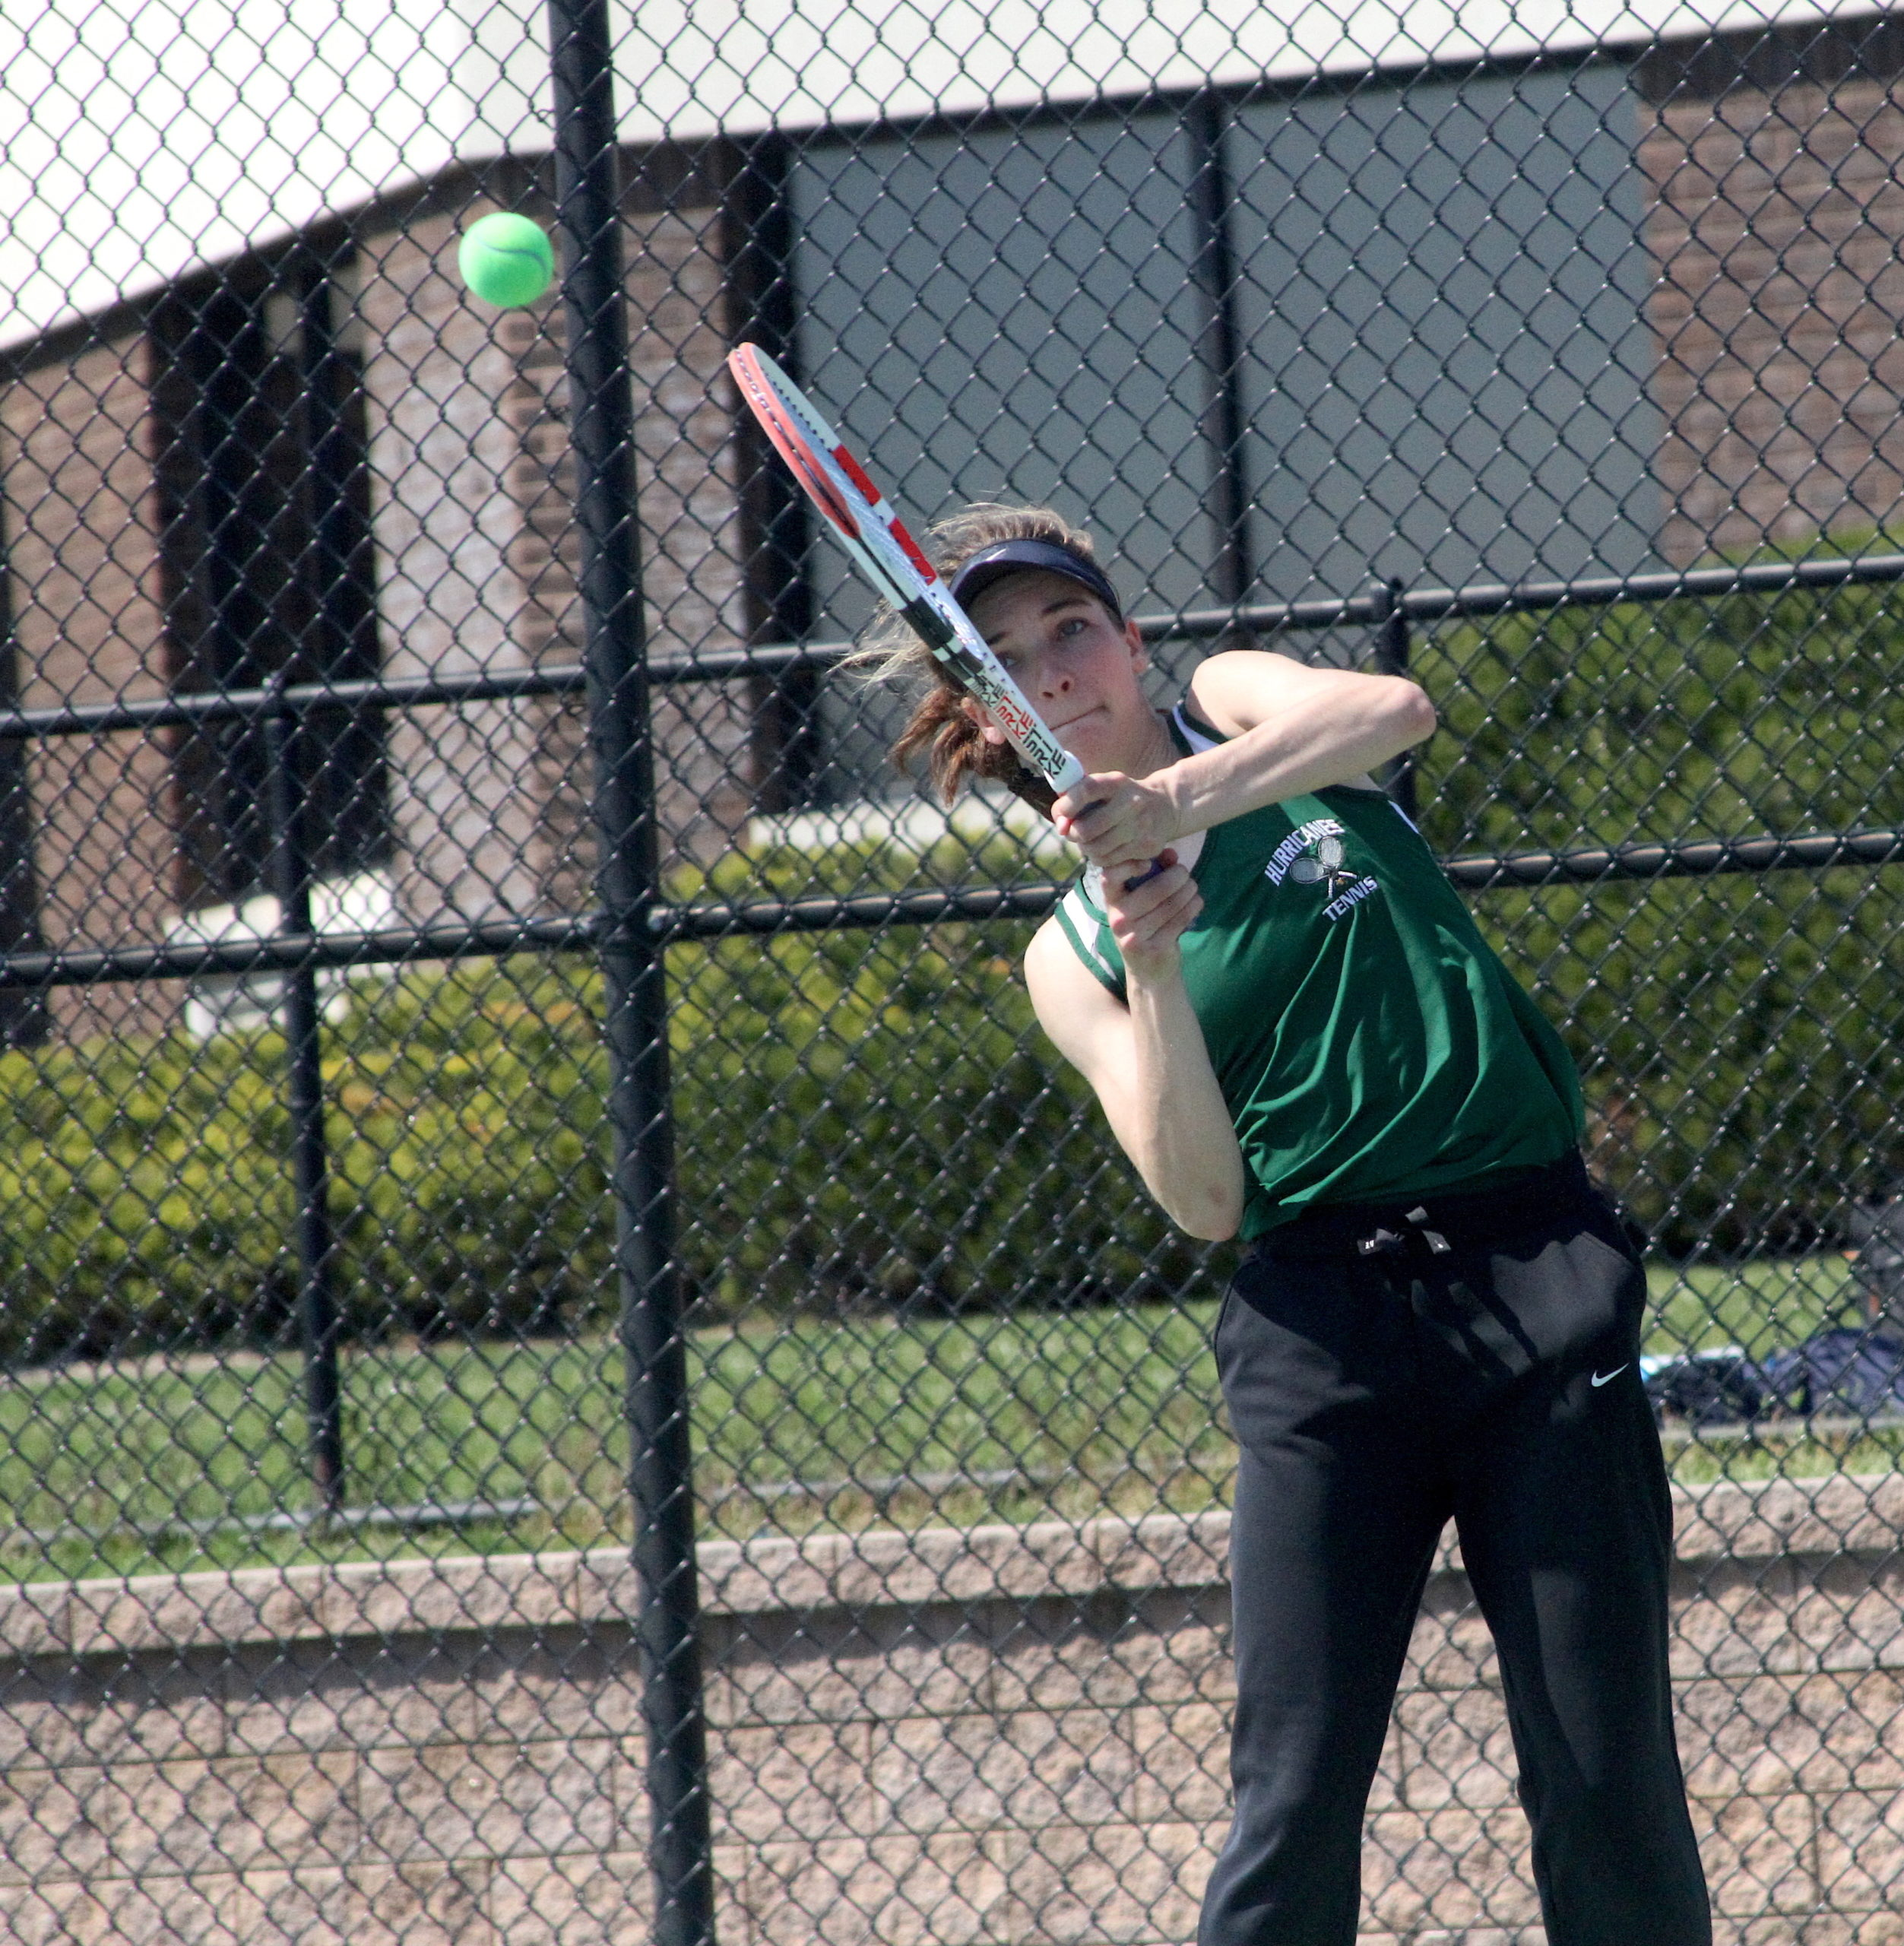 Westhampton Beach junior Rose Hayes was solid at the baseline in the Division IV singles finals.